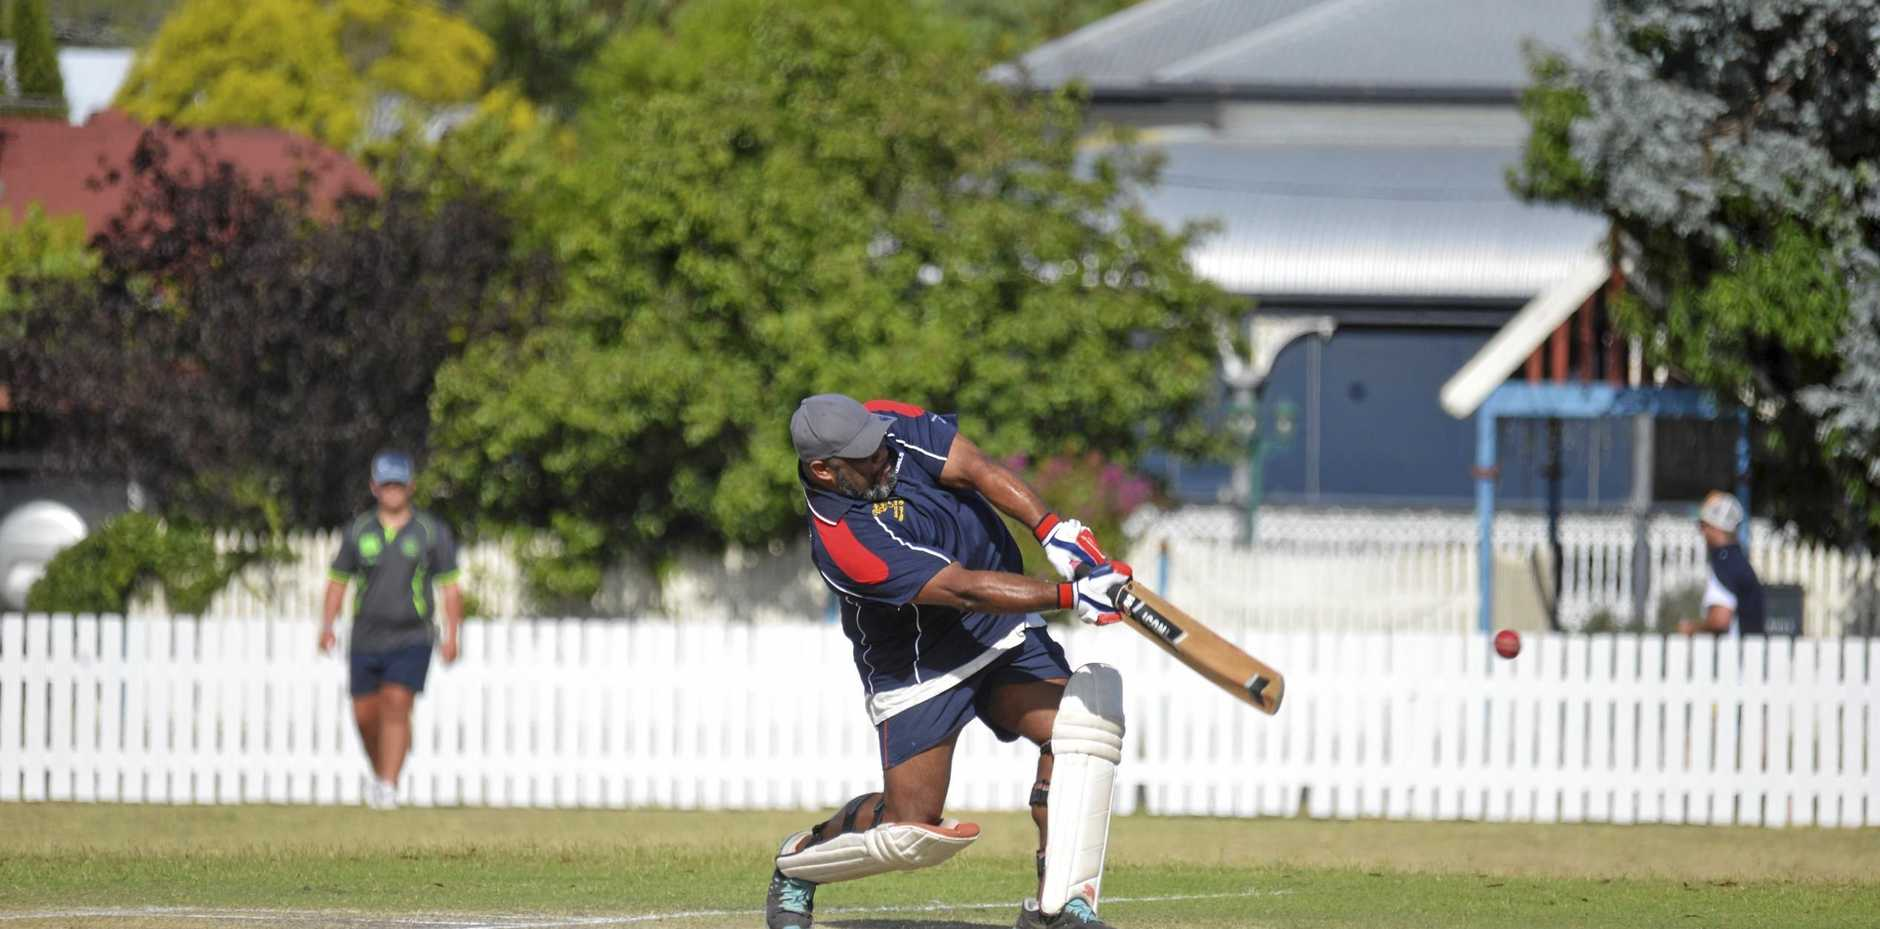 Shane Hooper hits hard for Marbuck's XI in a 50 not out in a competitive grand final in the Australia Day Cricket Carnival.